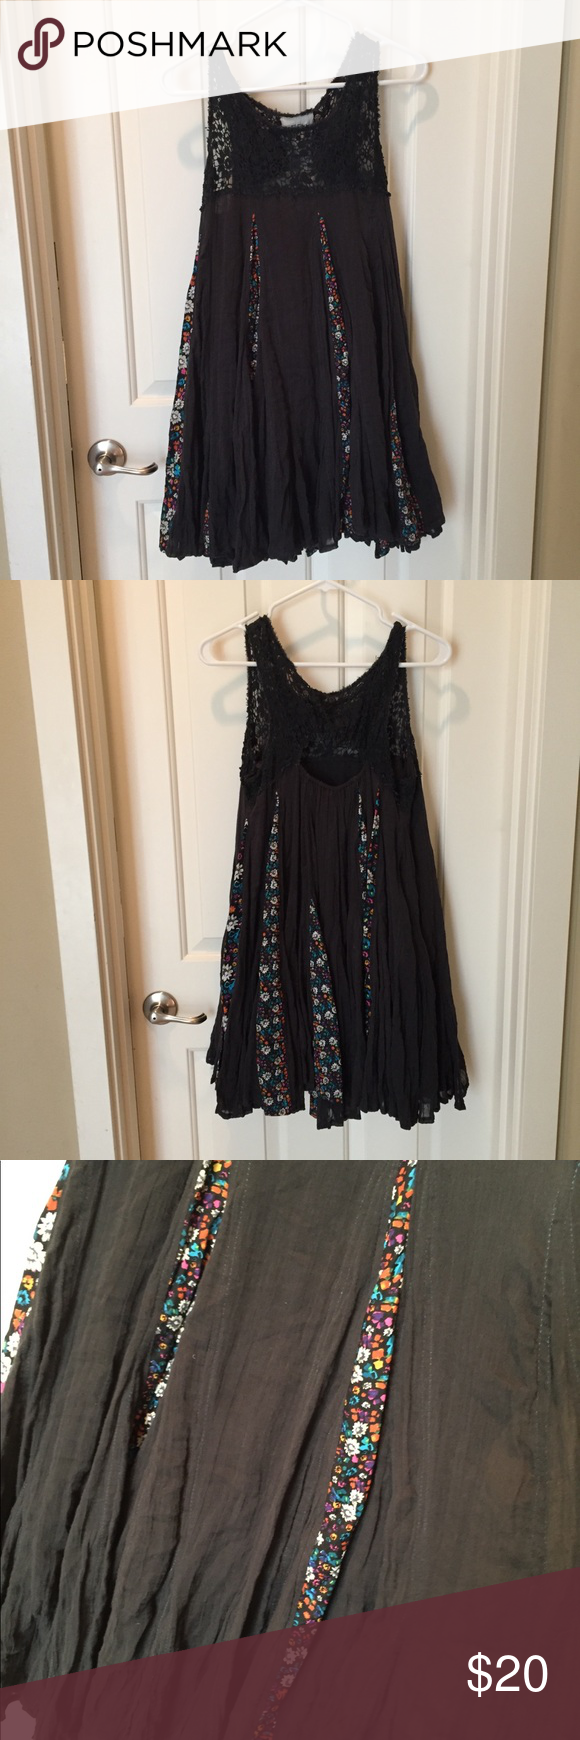 Free people swim cover up dress swim cover free people and swimming